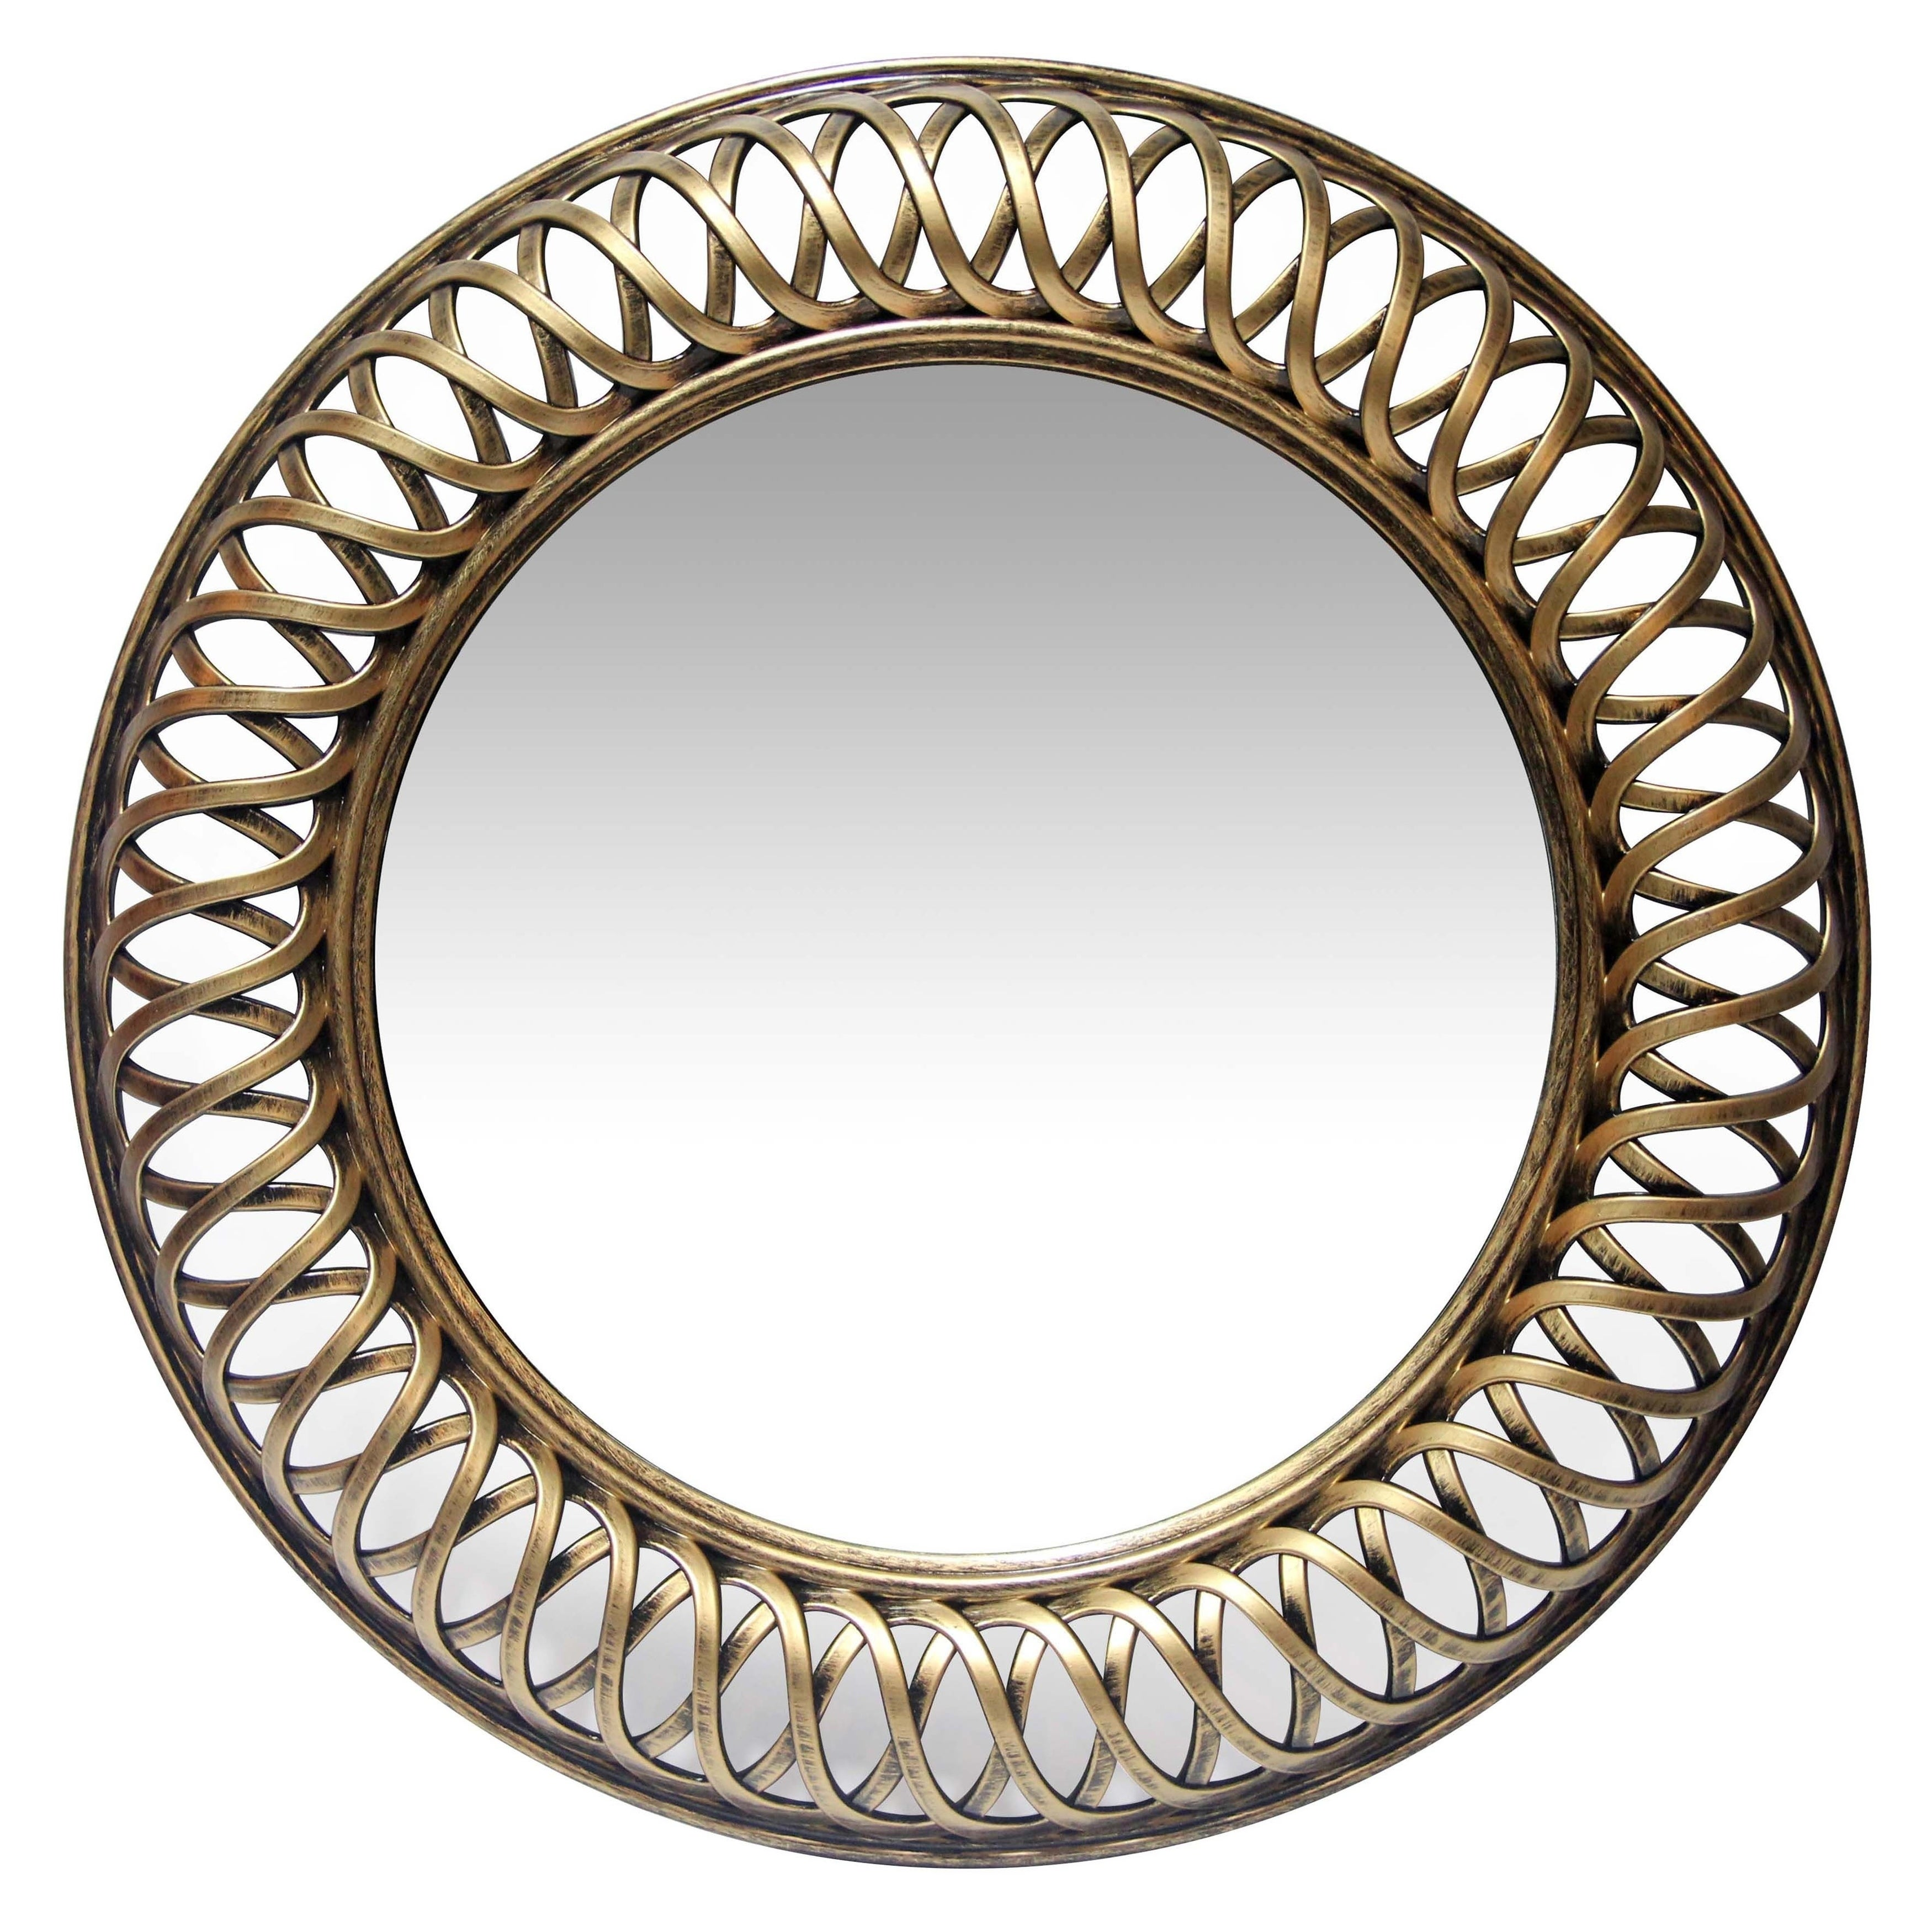 22.75 inch Hand Brushed Wall Mirror Lattice by Infinity Instruments - N/A (Antique Silver - Silver)